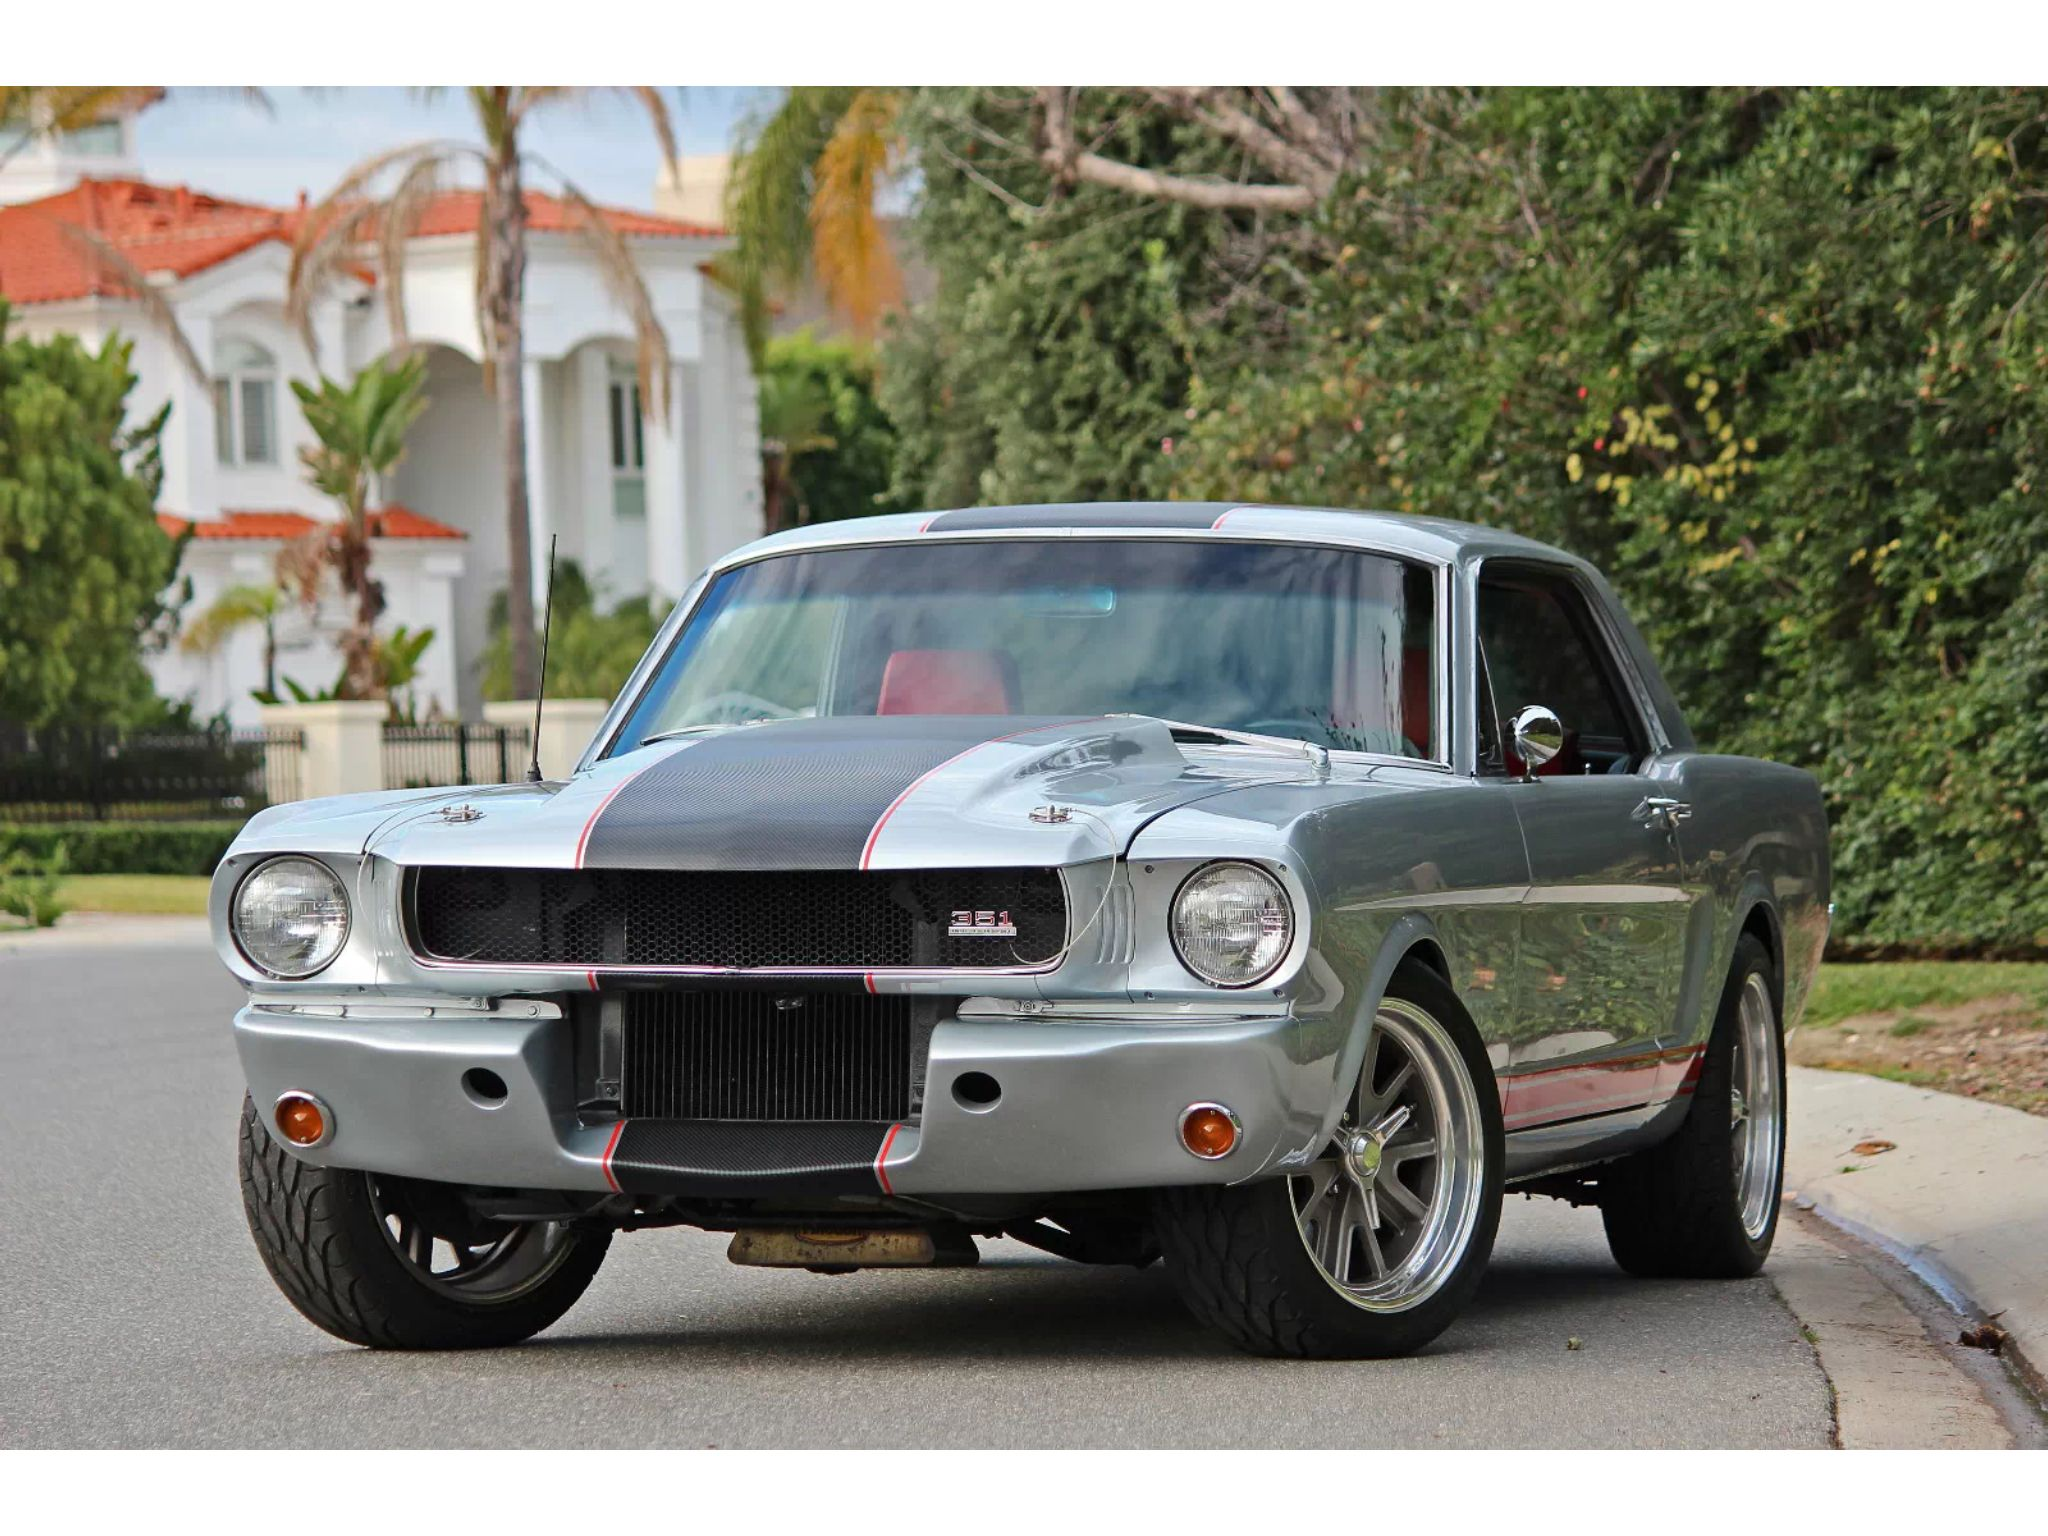 1966 Mustang Coupe Restomod Ford Mustang Classic Ford Mustang Shelby Cobra Vintage Mustang